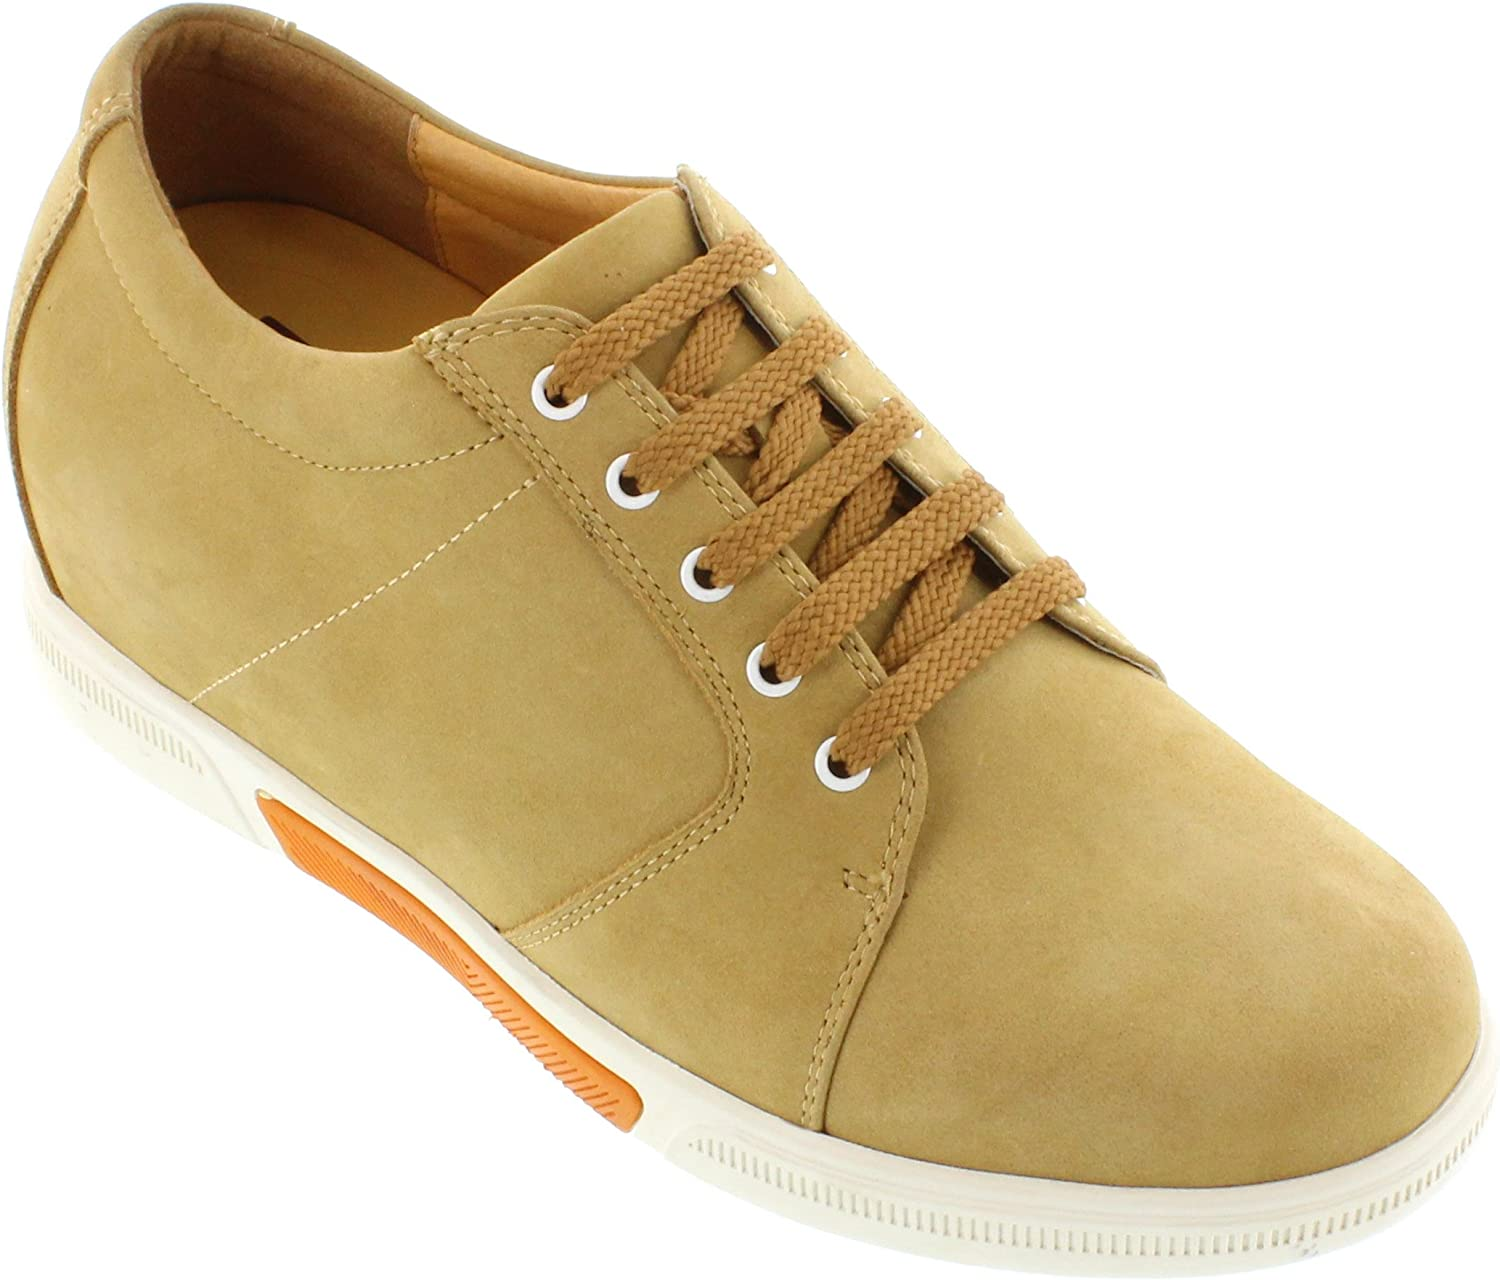 Toto Men's Invisible Height Increasing Elevator shoes - Camel Brown Nubuck Leather Lace-up Casual Fashion Sneakers - 3 Inches Taller - H7083